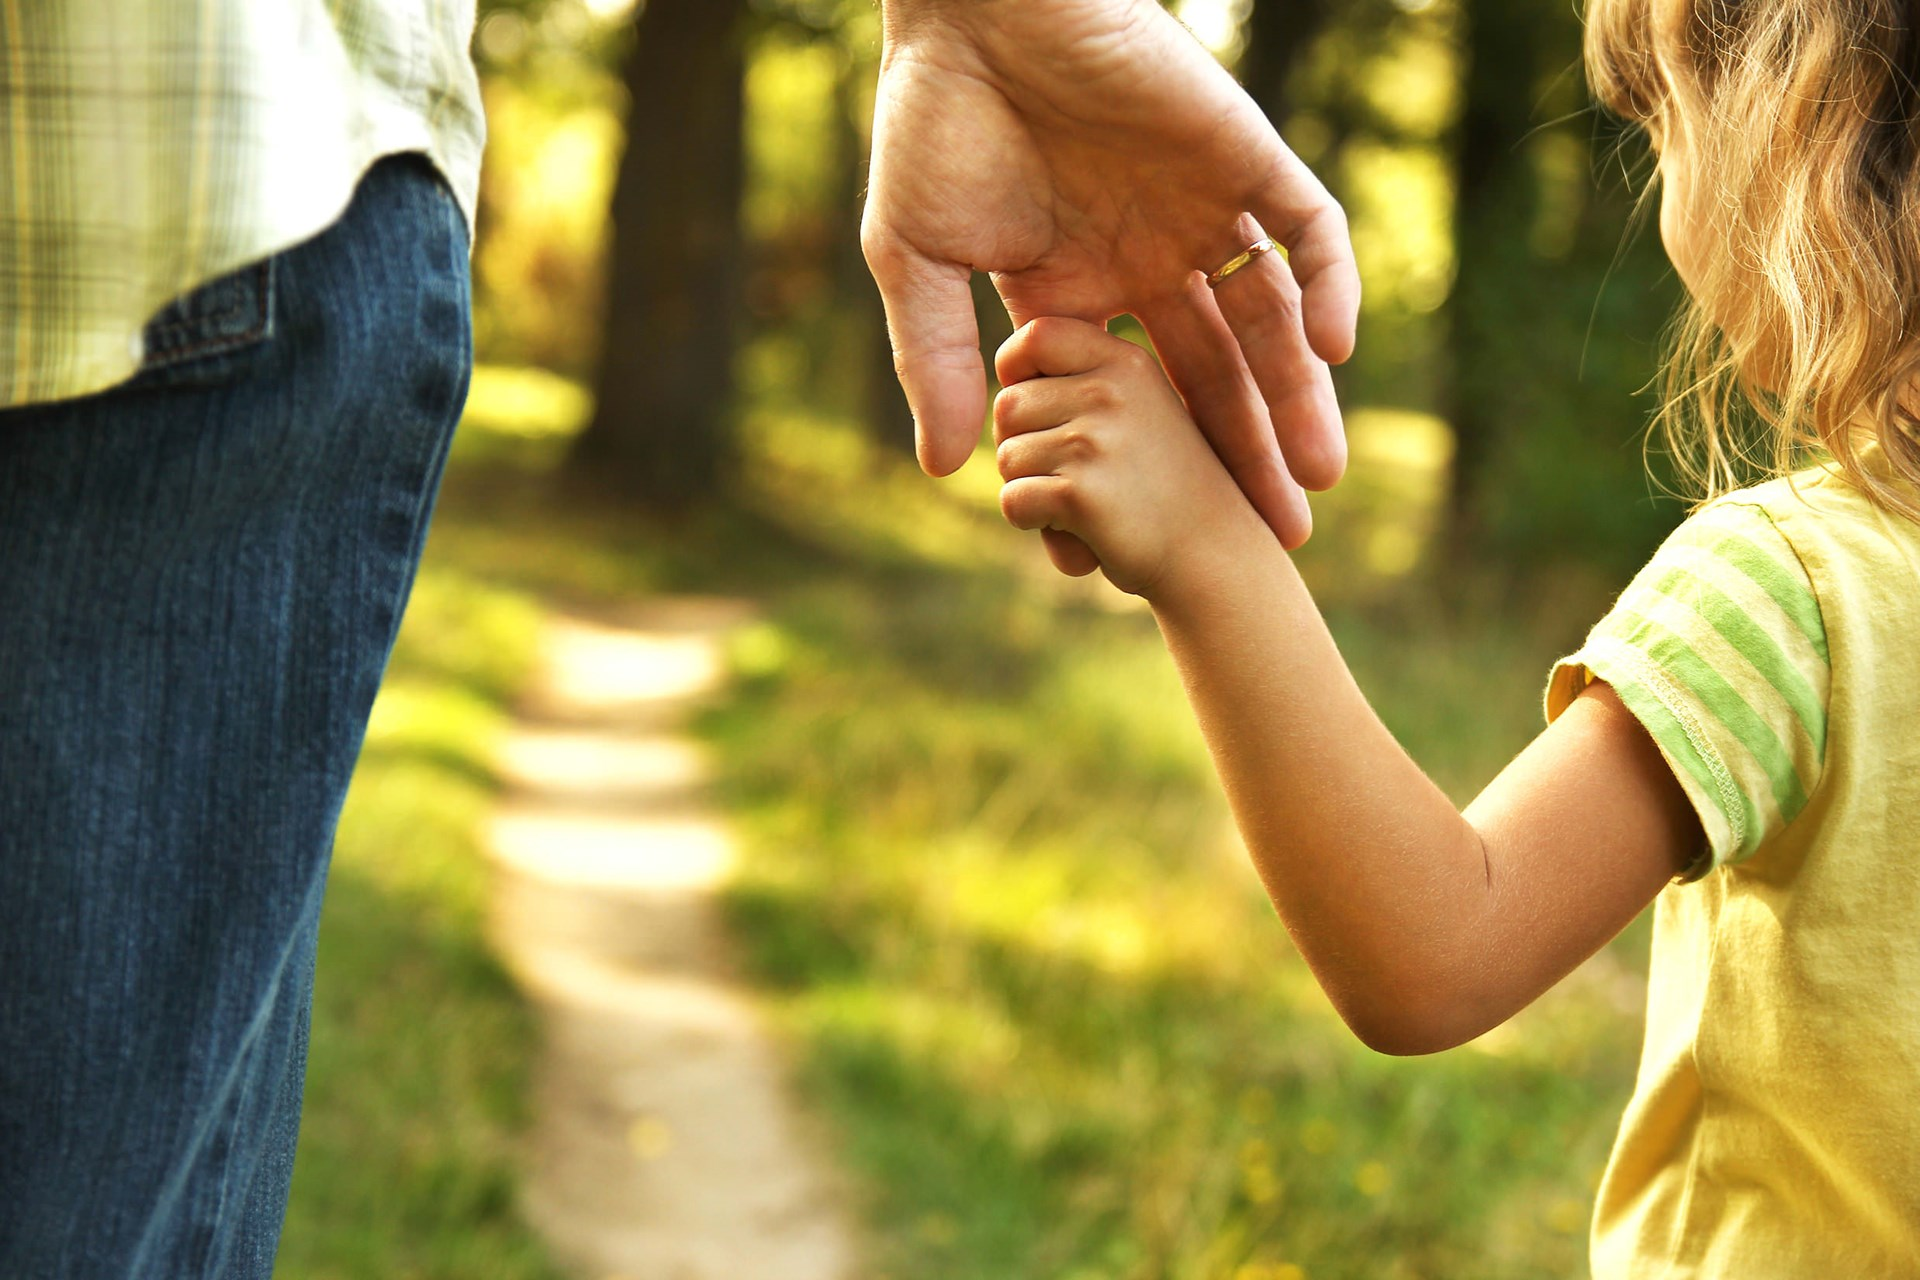 Wise Parenting Uses Natural Consequences, Not Artificial Ones Imposed by Force